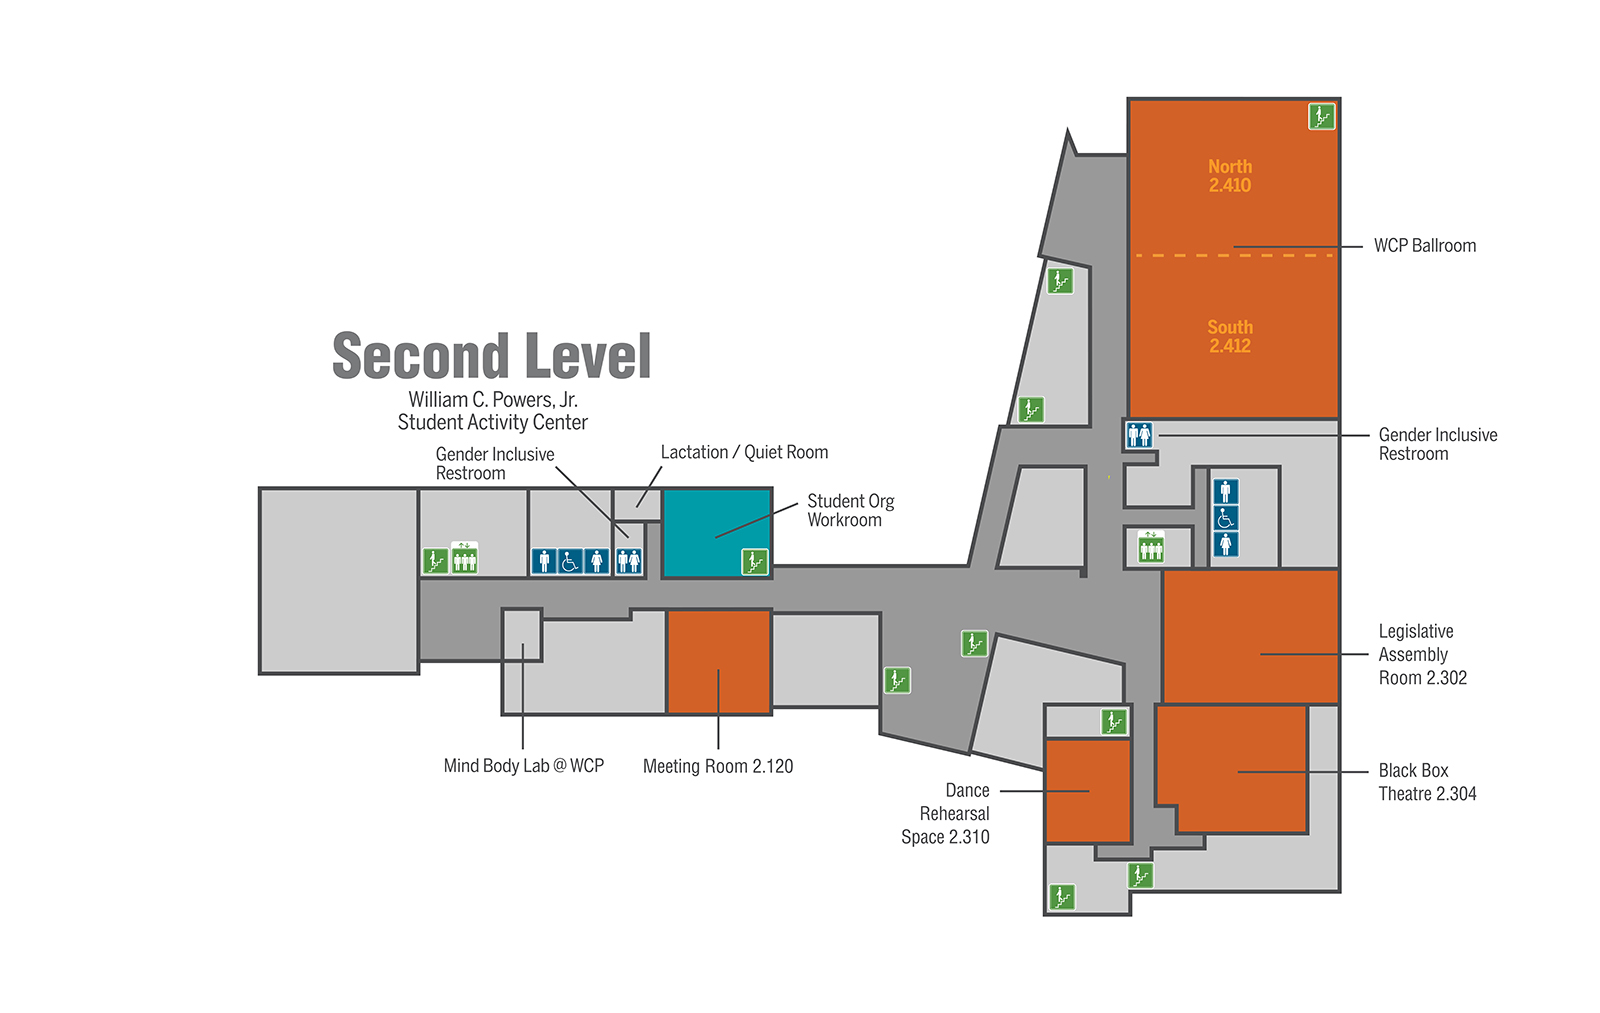 Generic map of Student Activity Center second level.